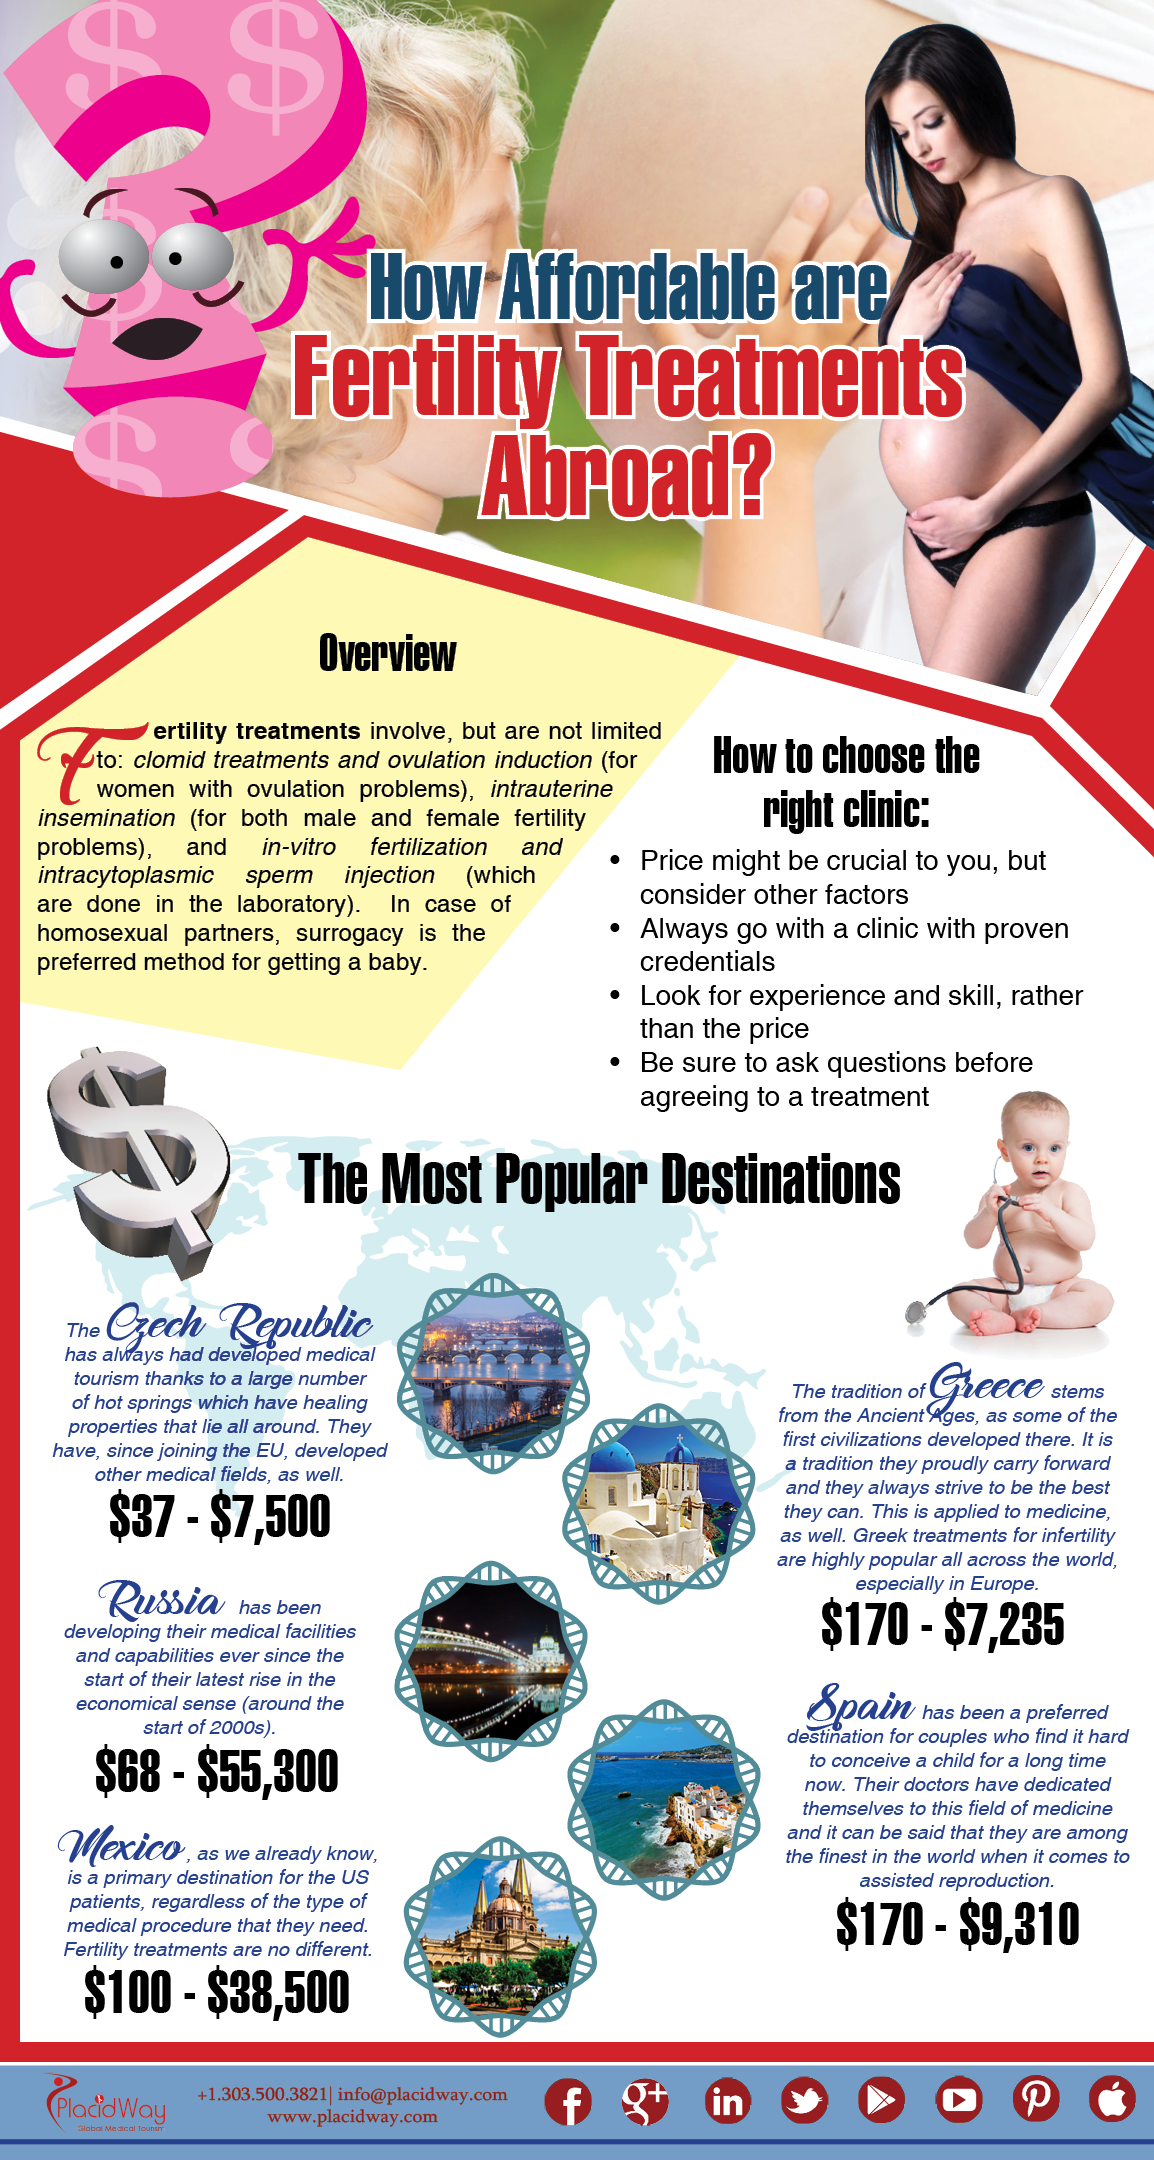 Infographics: How Affordable Are Fertility Treatments Abroad